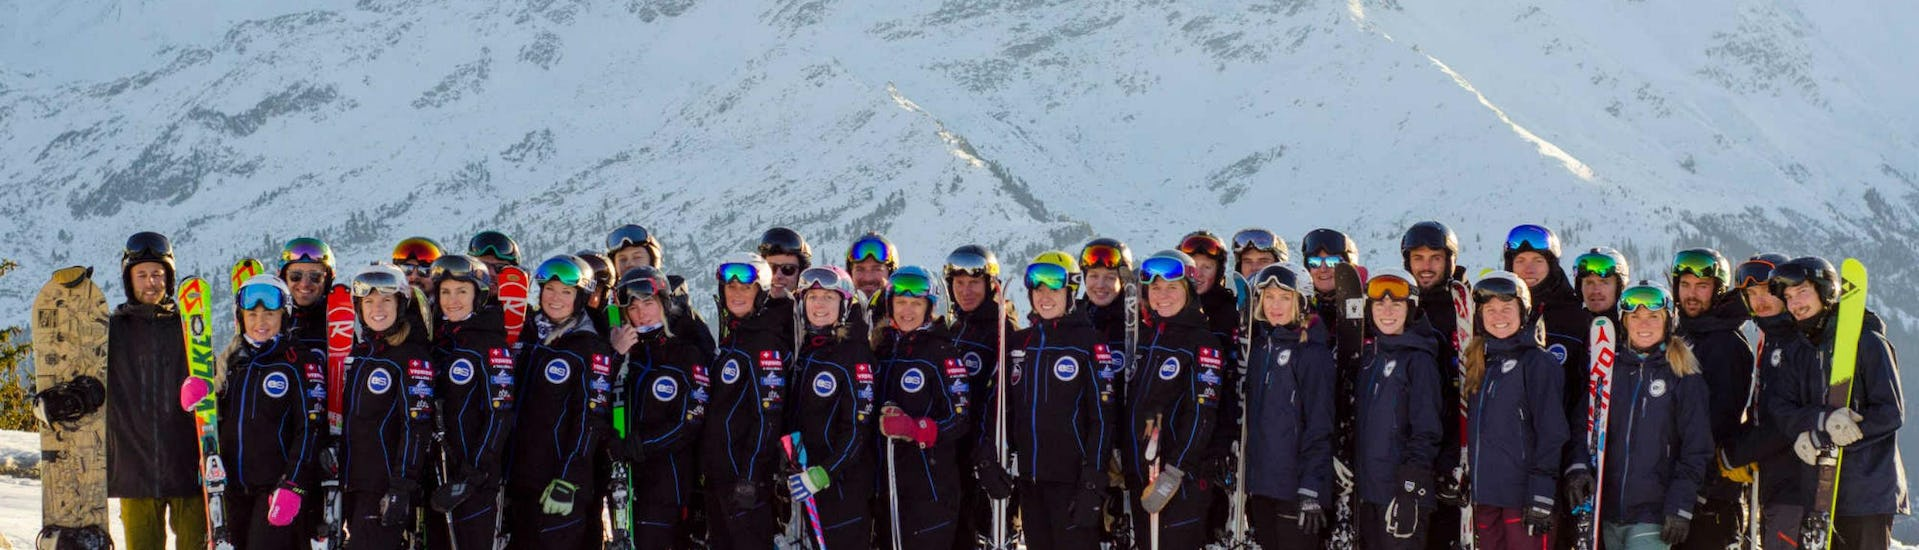 The ski instructors from the ski school European Snowsport Chamonix are posing together on top of one of the many pistes in the ski resort of Chamonix.